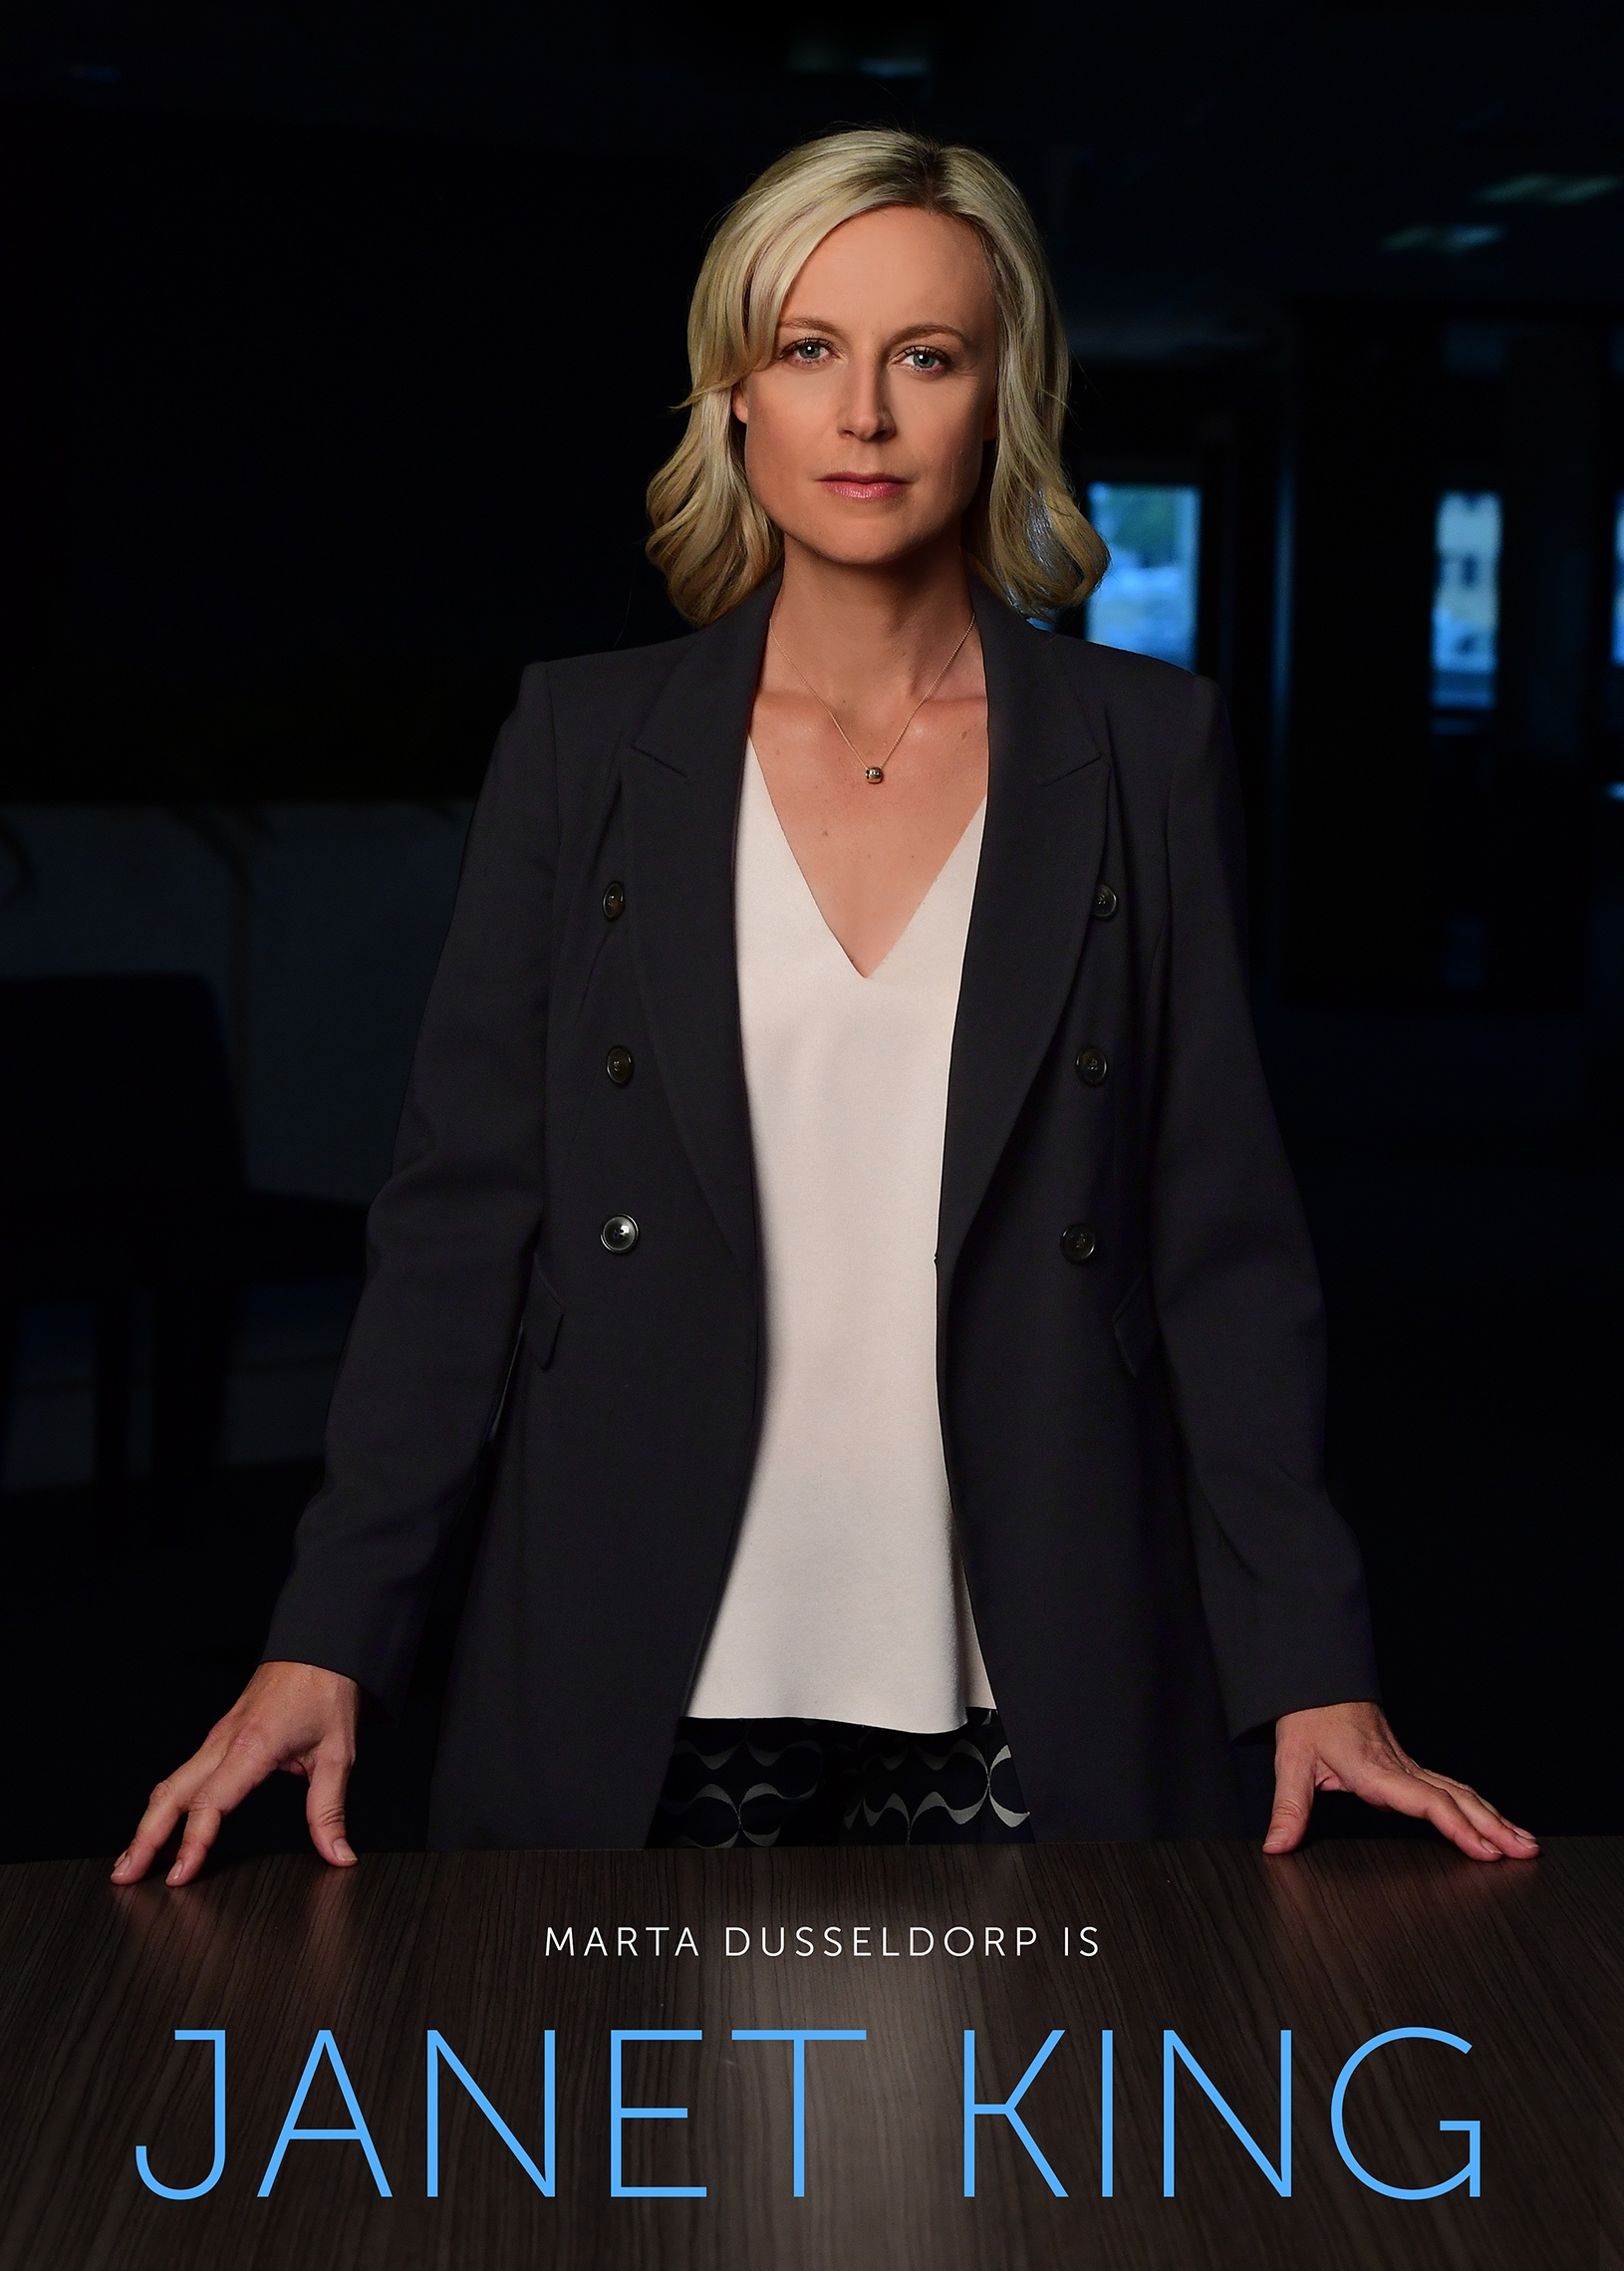 Janet King S3 - Production Cover